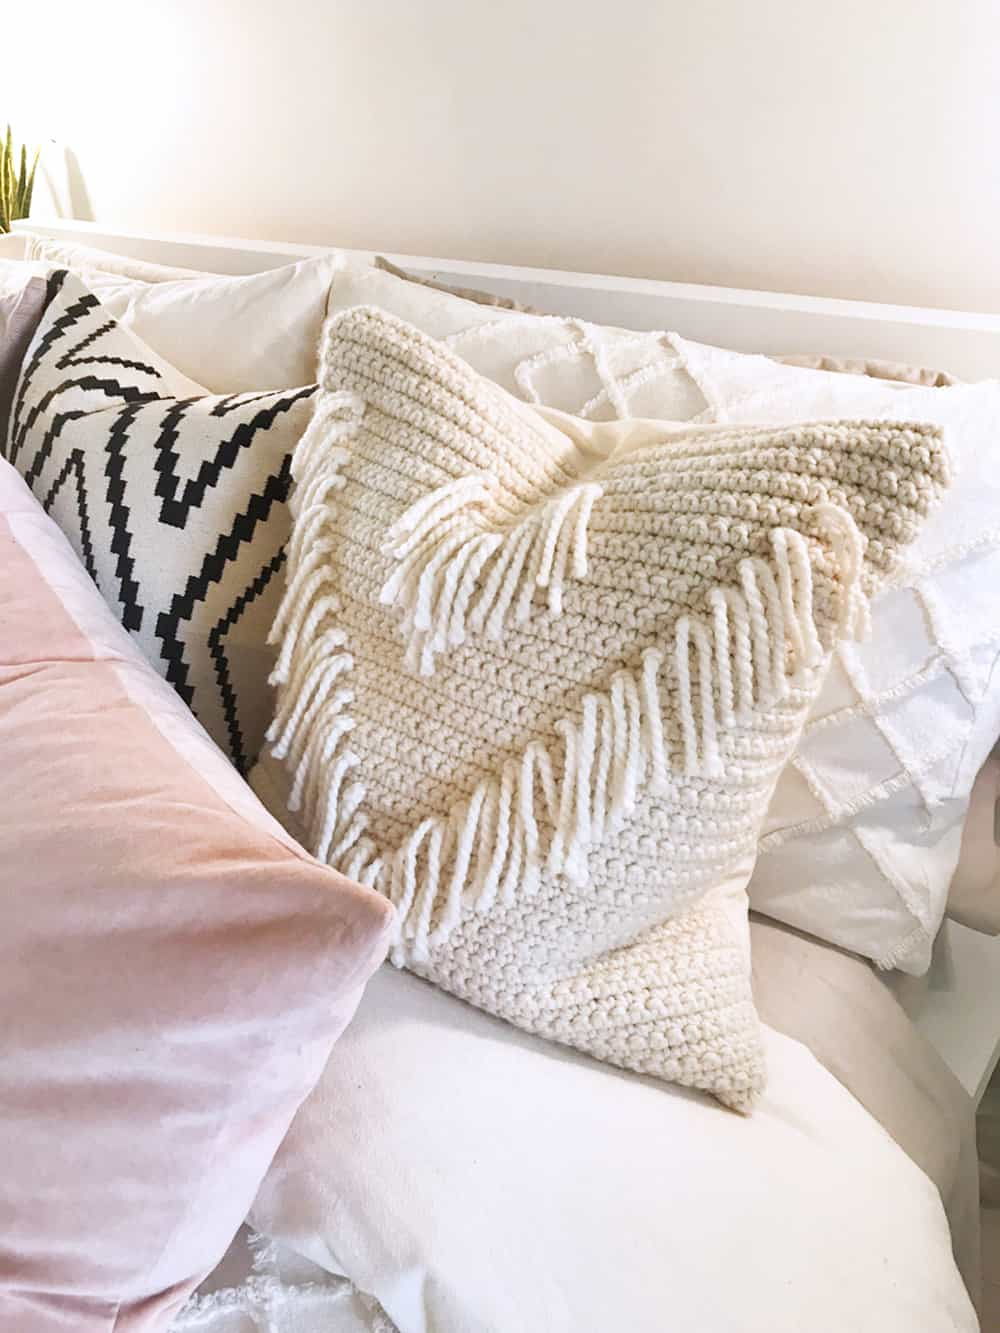 diy crochet pillow with fringes